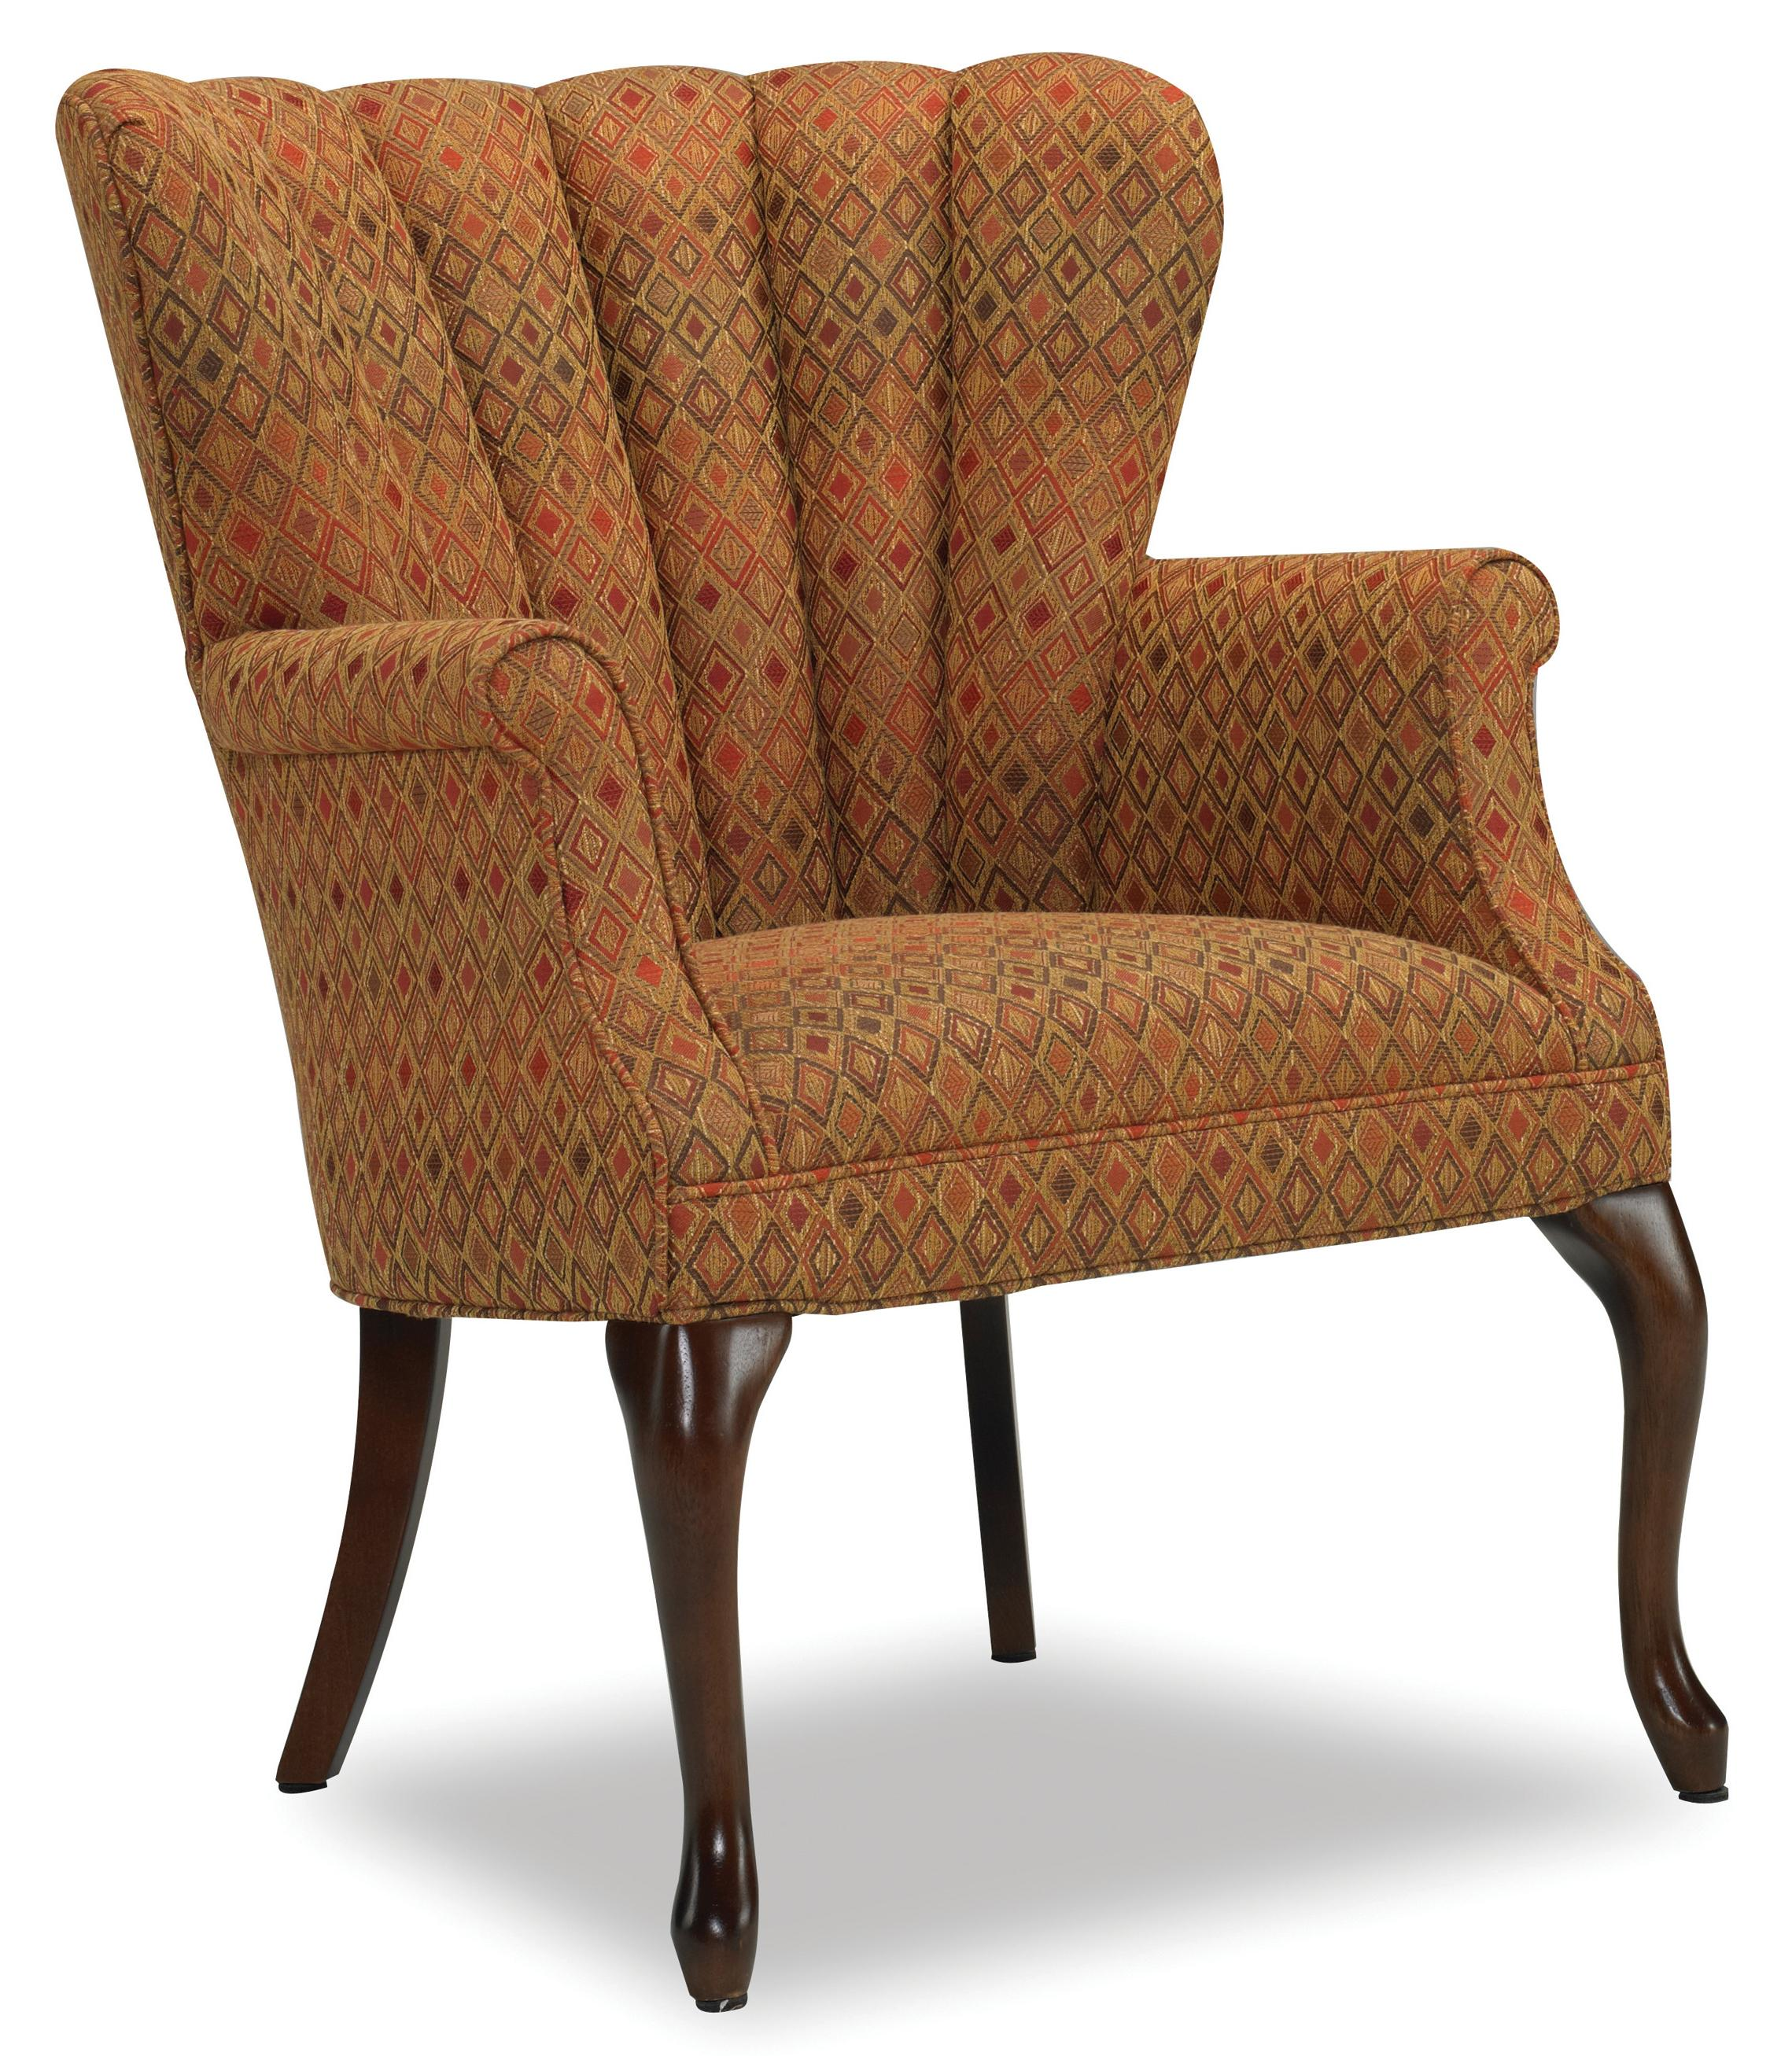 Annabelle Traditional Queen Anne Barrel Chair With Channel Back And  Cabriole Legs By Sam Moore